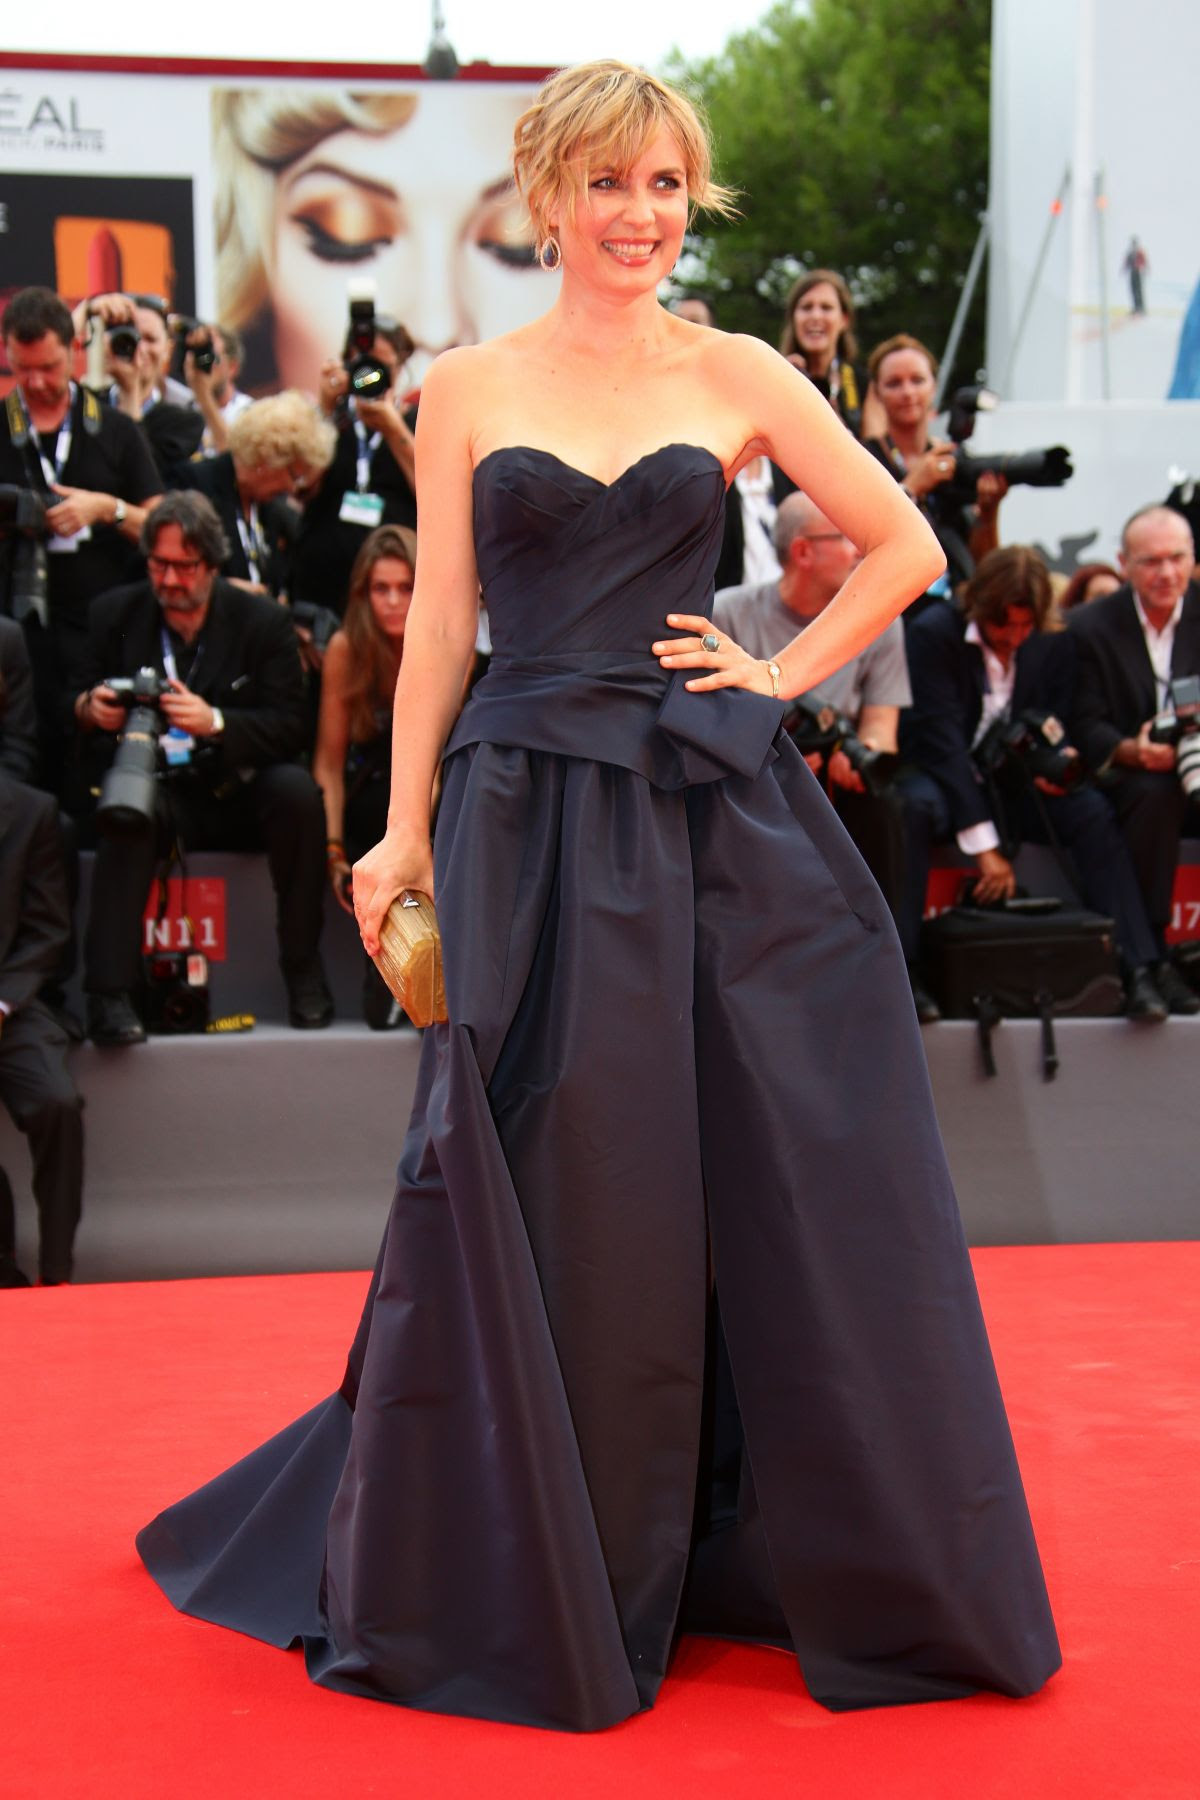 http://www.hawtcelebs.com/wp-content/uploads/2015/09/radha-mitchell-at-everest-premiere-and-72nd-venice-film-festival-opening-ceremony_2.jpg